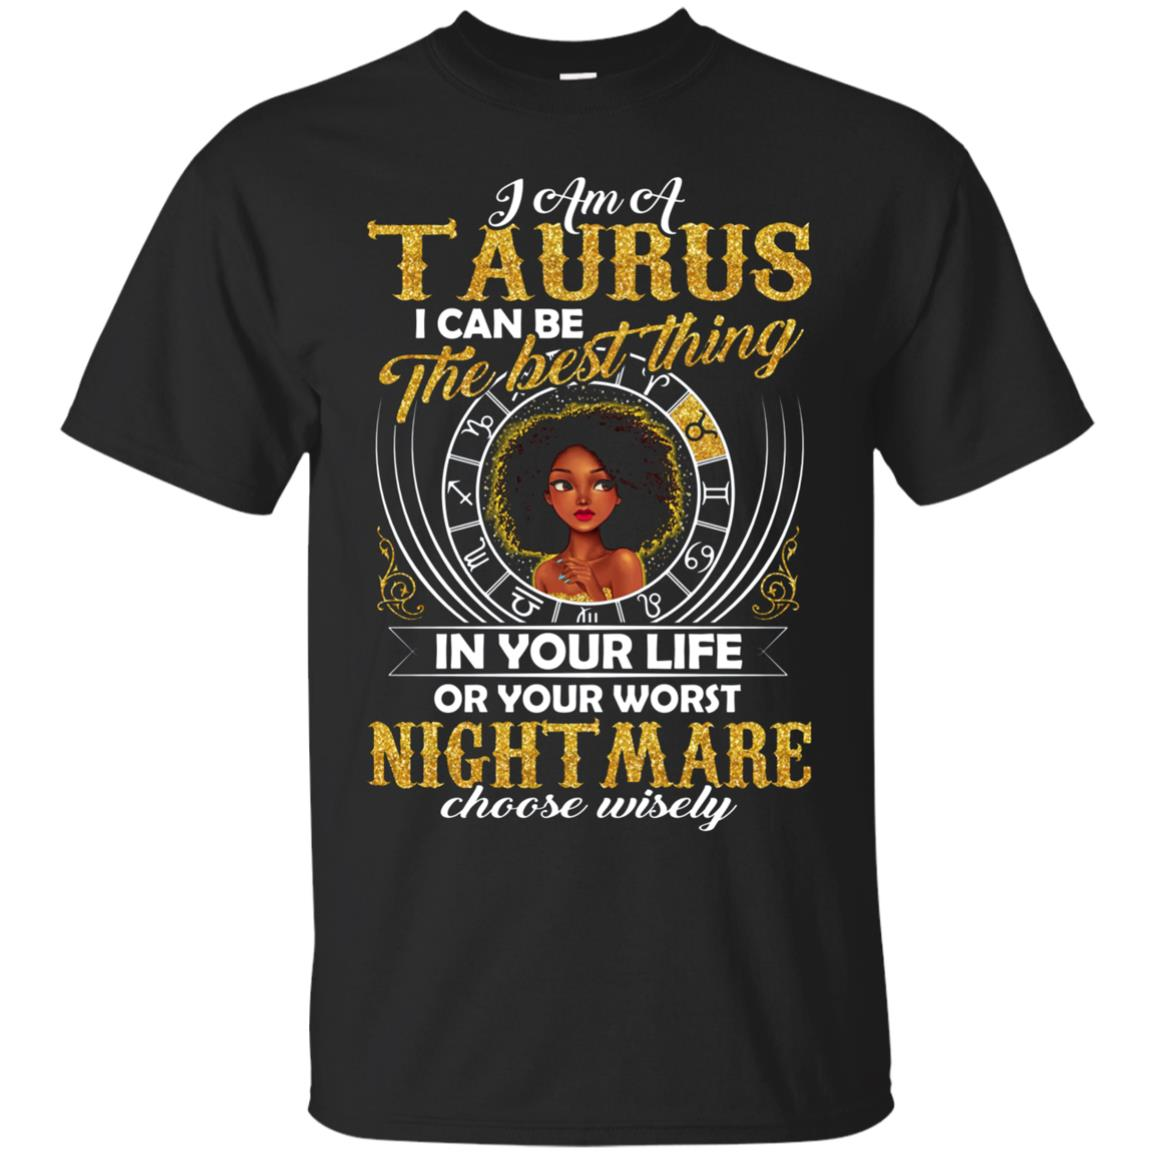 I Am Taurus Girl T-Shirt, I Can Be Your Worst Night Mare